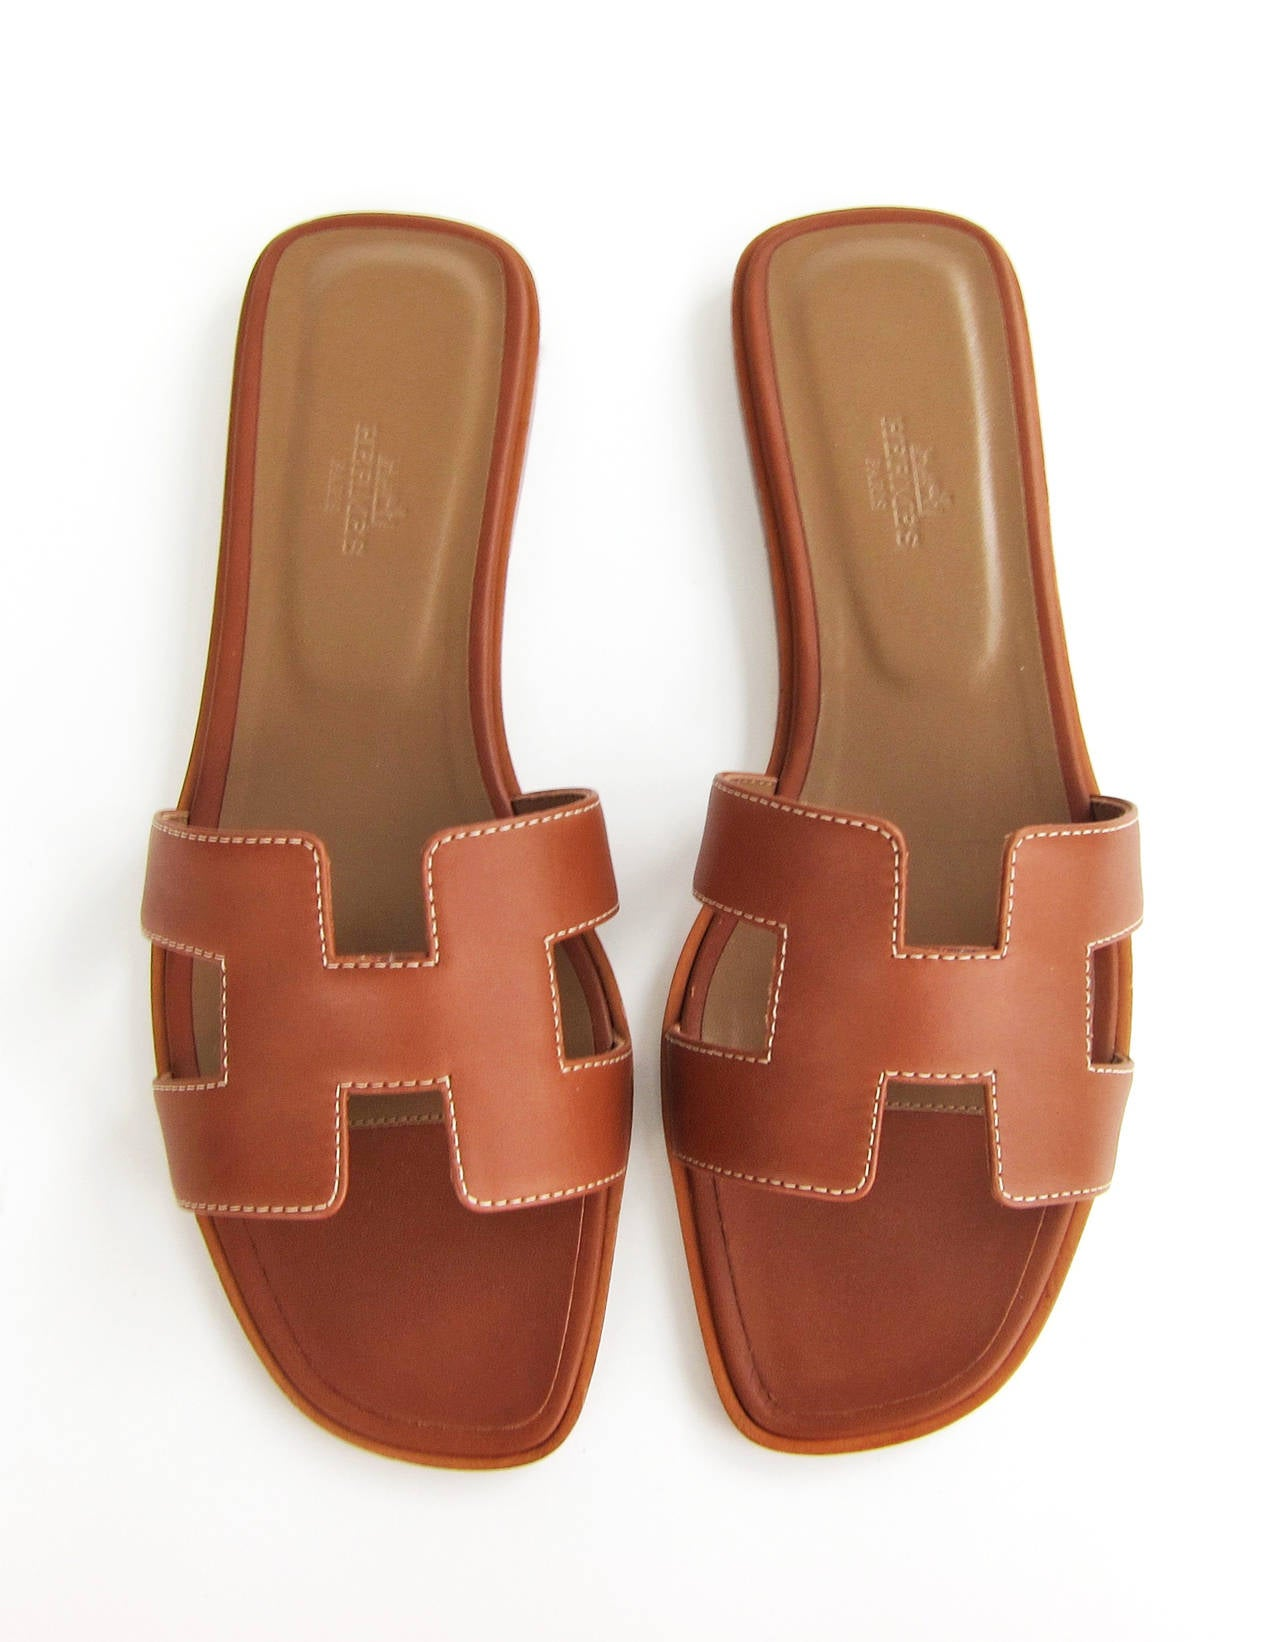 Hermes Gold Oran Box Leather Sandals Size 40 Summer 3